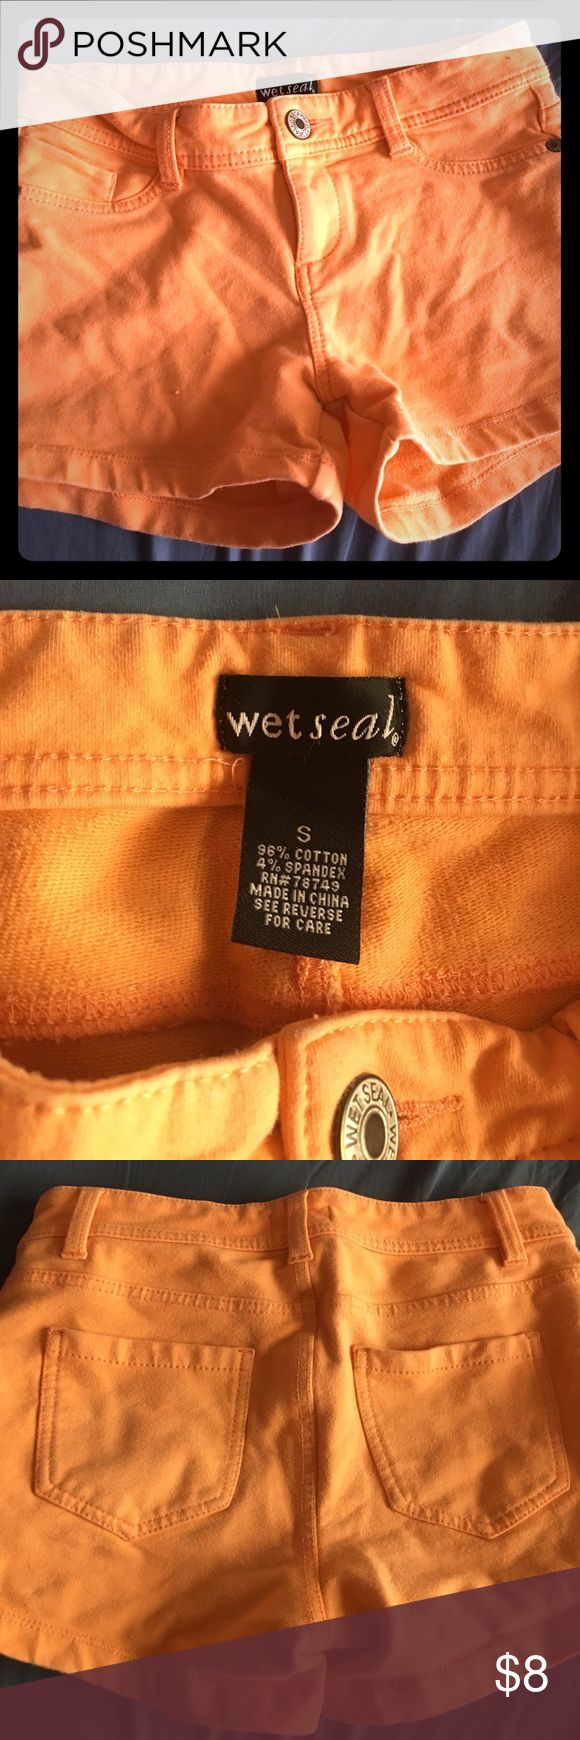 Wet Seal Peach Shorts Size Small. These shorts are a bright peach color and are pretty short. They have back pockets. The shorts are pretty stretchy. Wet Seal Shorts